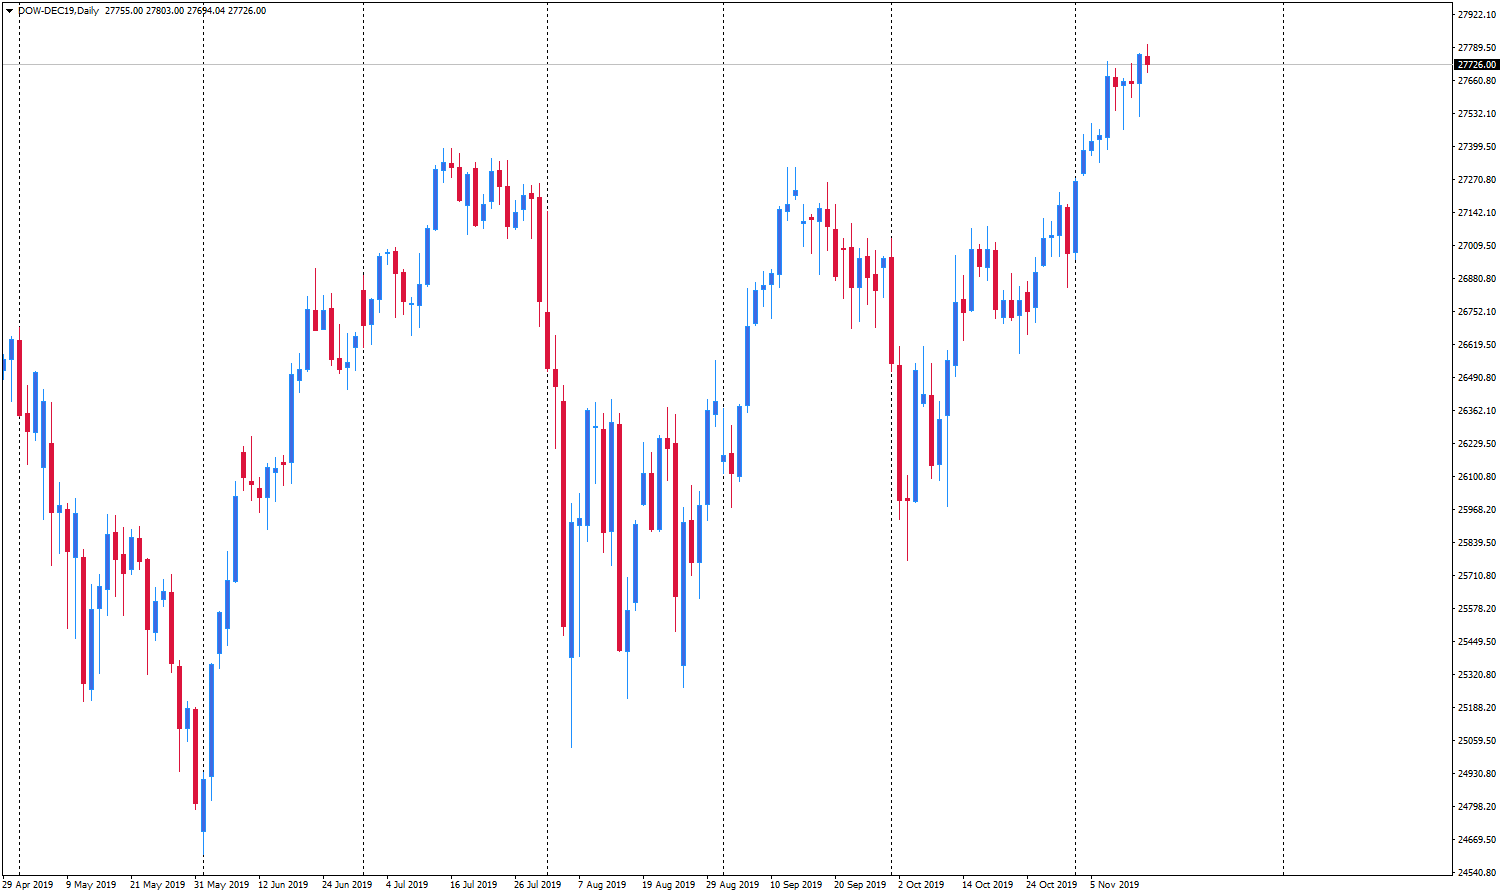 dow-dec19daily